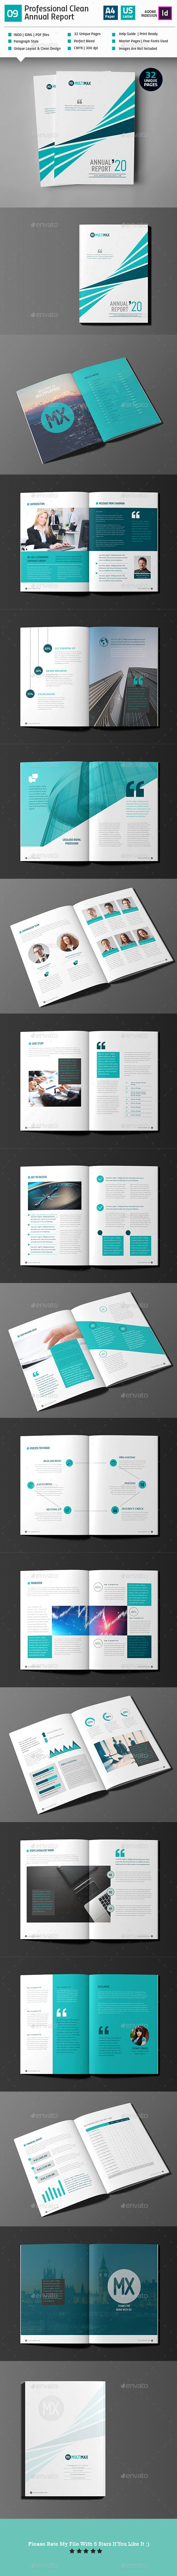 Clean Annual Report Template_V9 - Brochures Print Templates https://graphicriver.net/item/clean-annual-report-template_v9/19161592?ref=231267